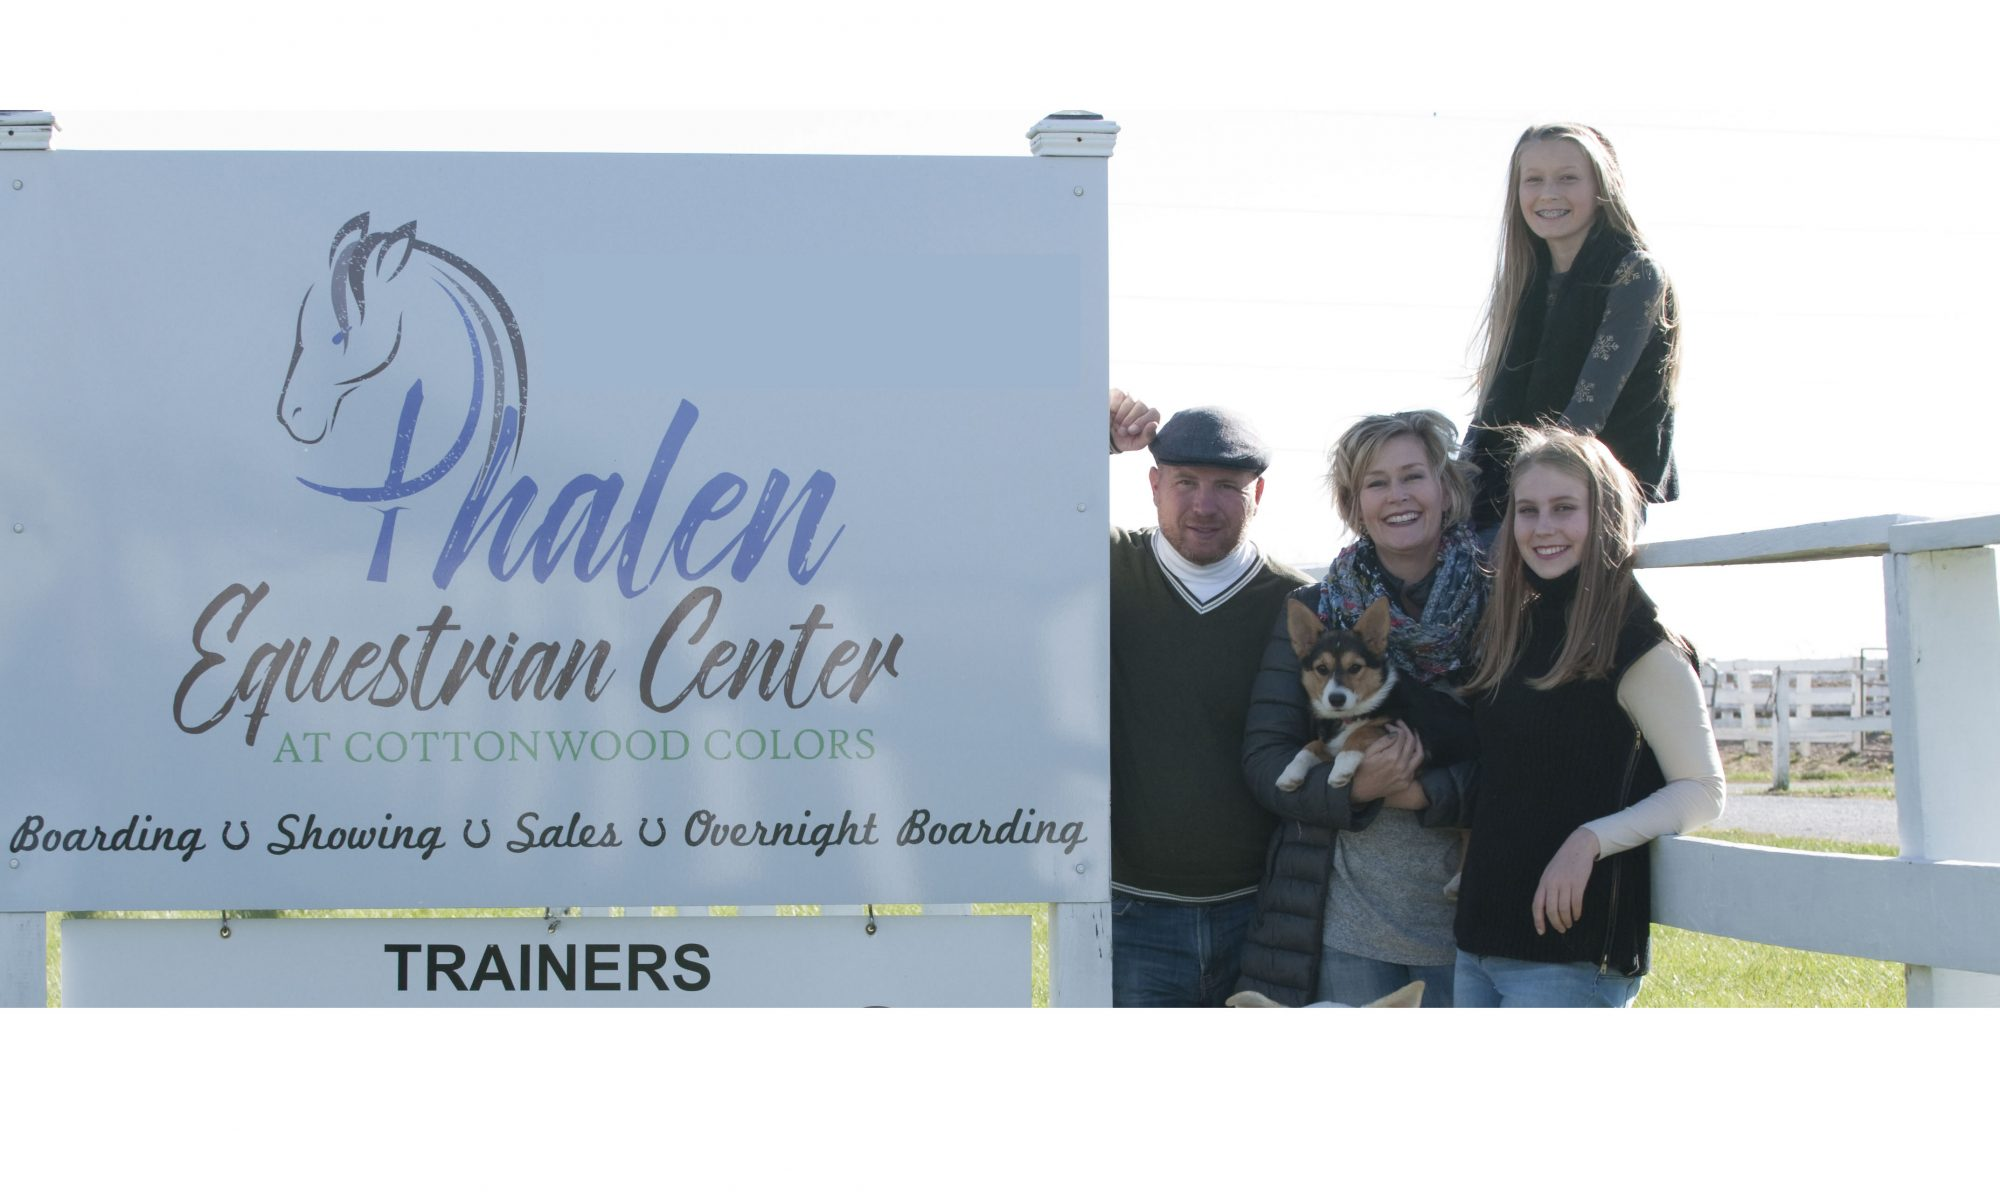 Phalen Equestrian Center and Horse Hotel